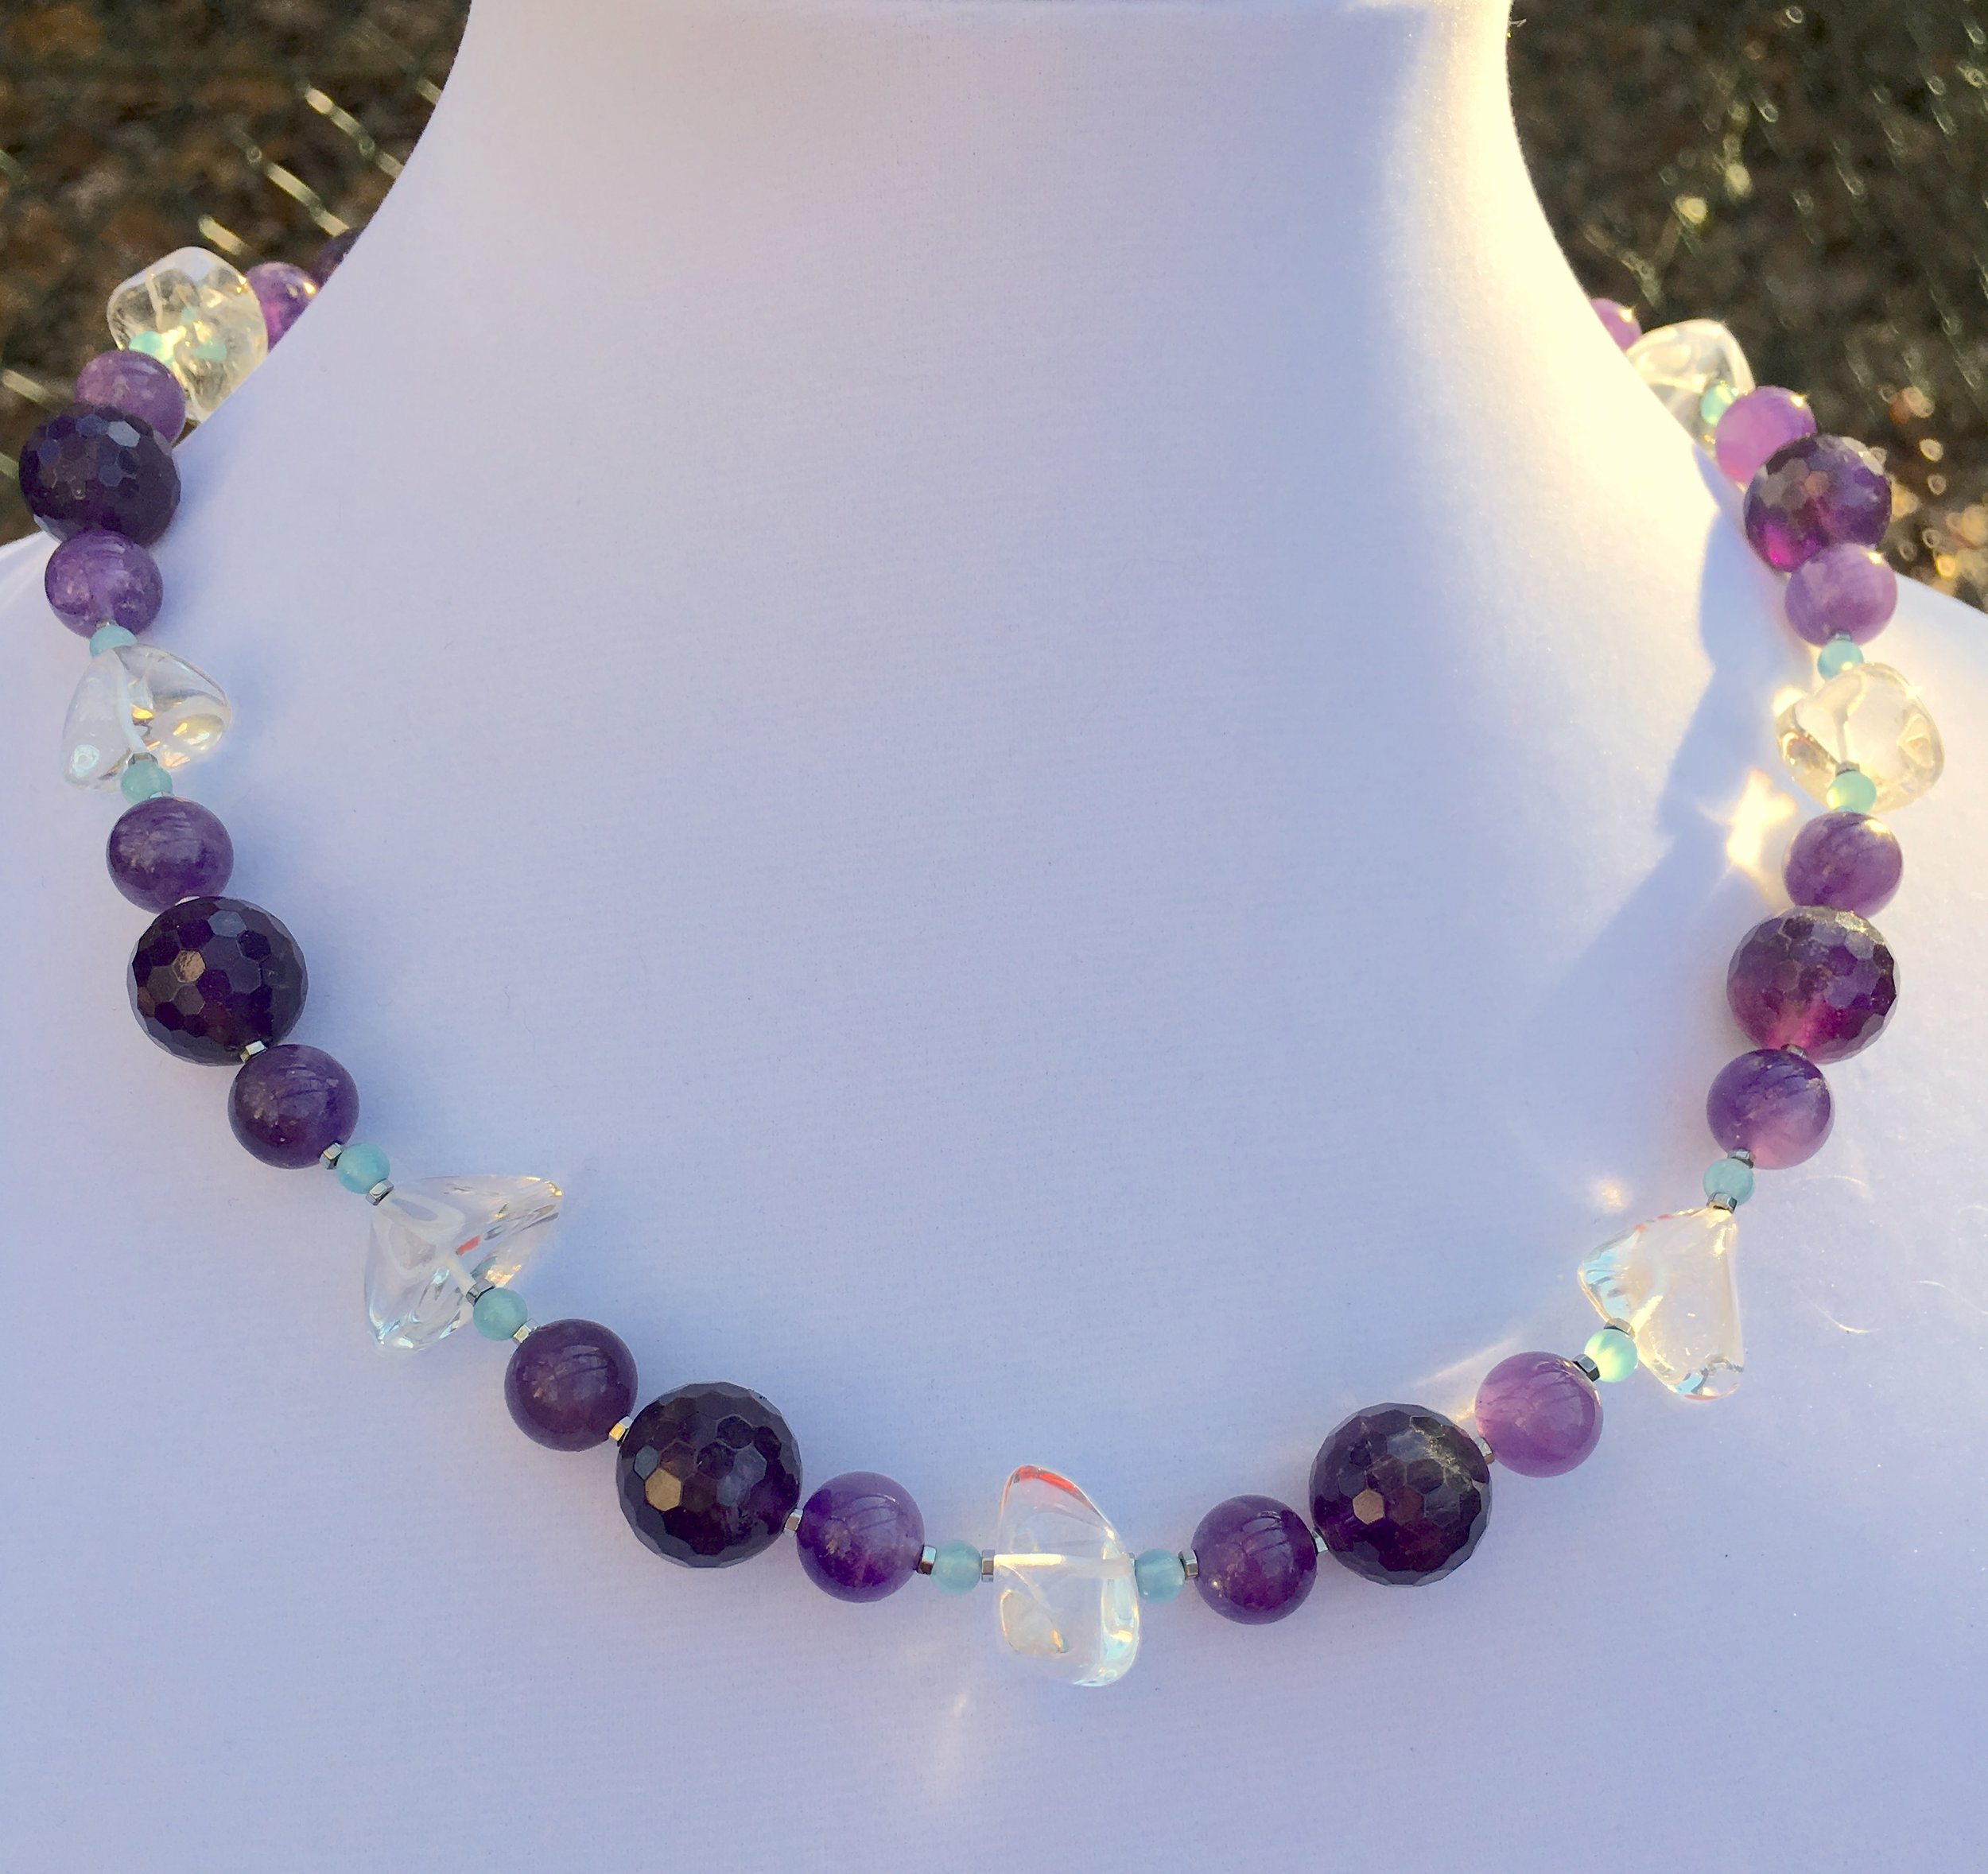 amethyst, clear quartz & aqua agatE NECKLACE  Large faceted 14 mm amethyst beads.10 mm medium purple amethyst beads. Clear quartz nuggets.Dyed aqua agate small beads.Sterling silver clasp. 21 in.$275